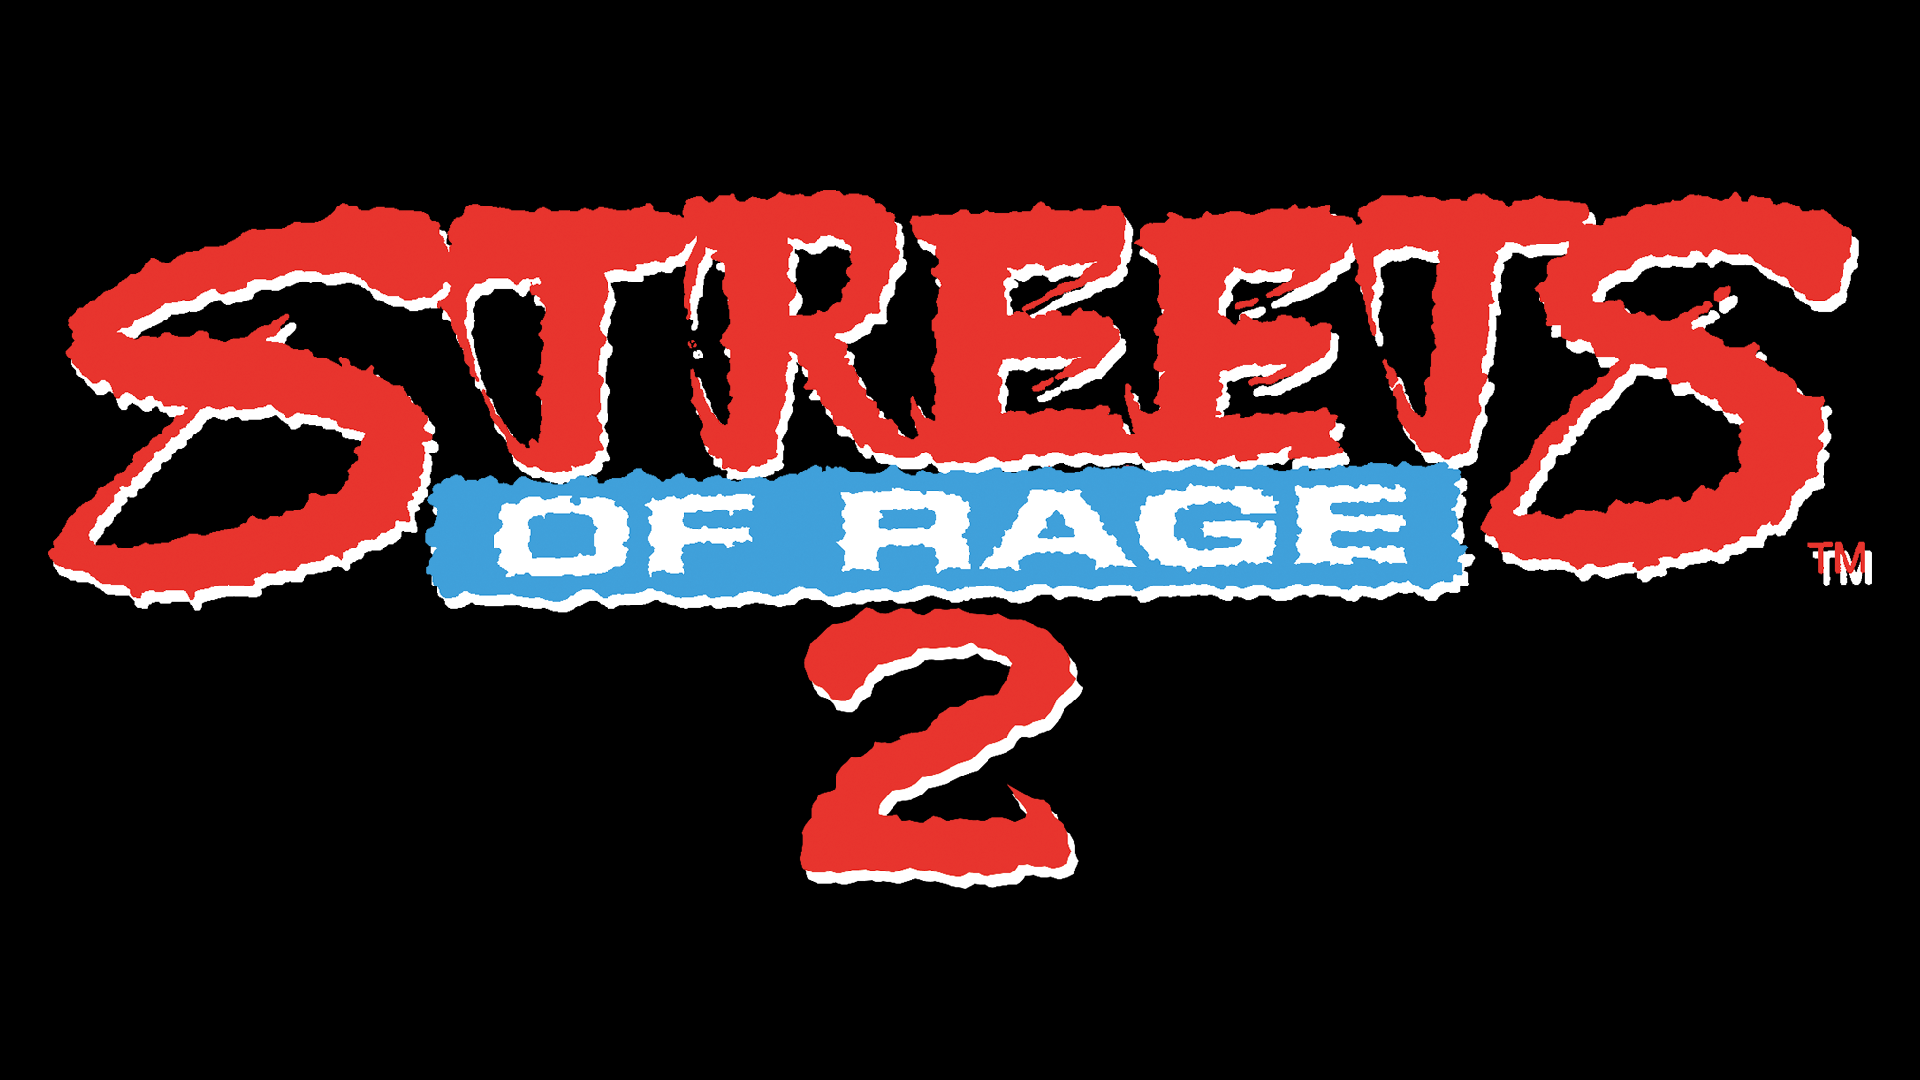 Streets Of Rage 2 Wallpaper Posted By Samantha Simpson